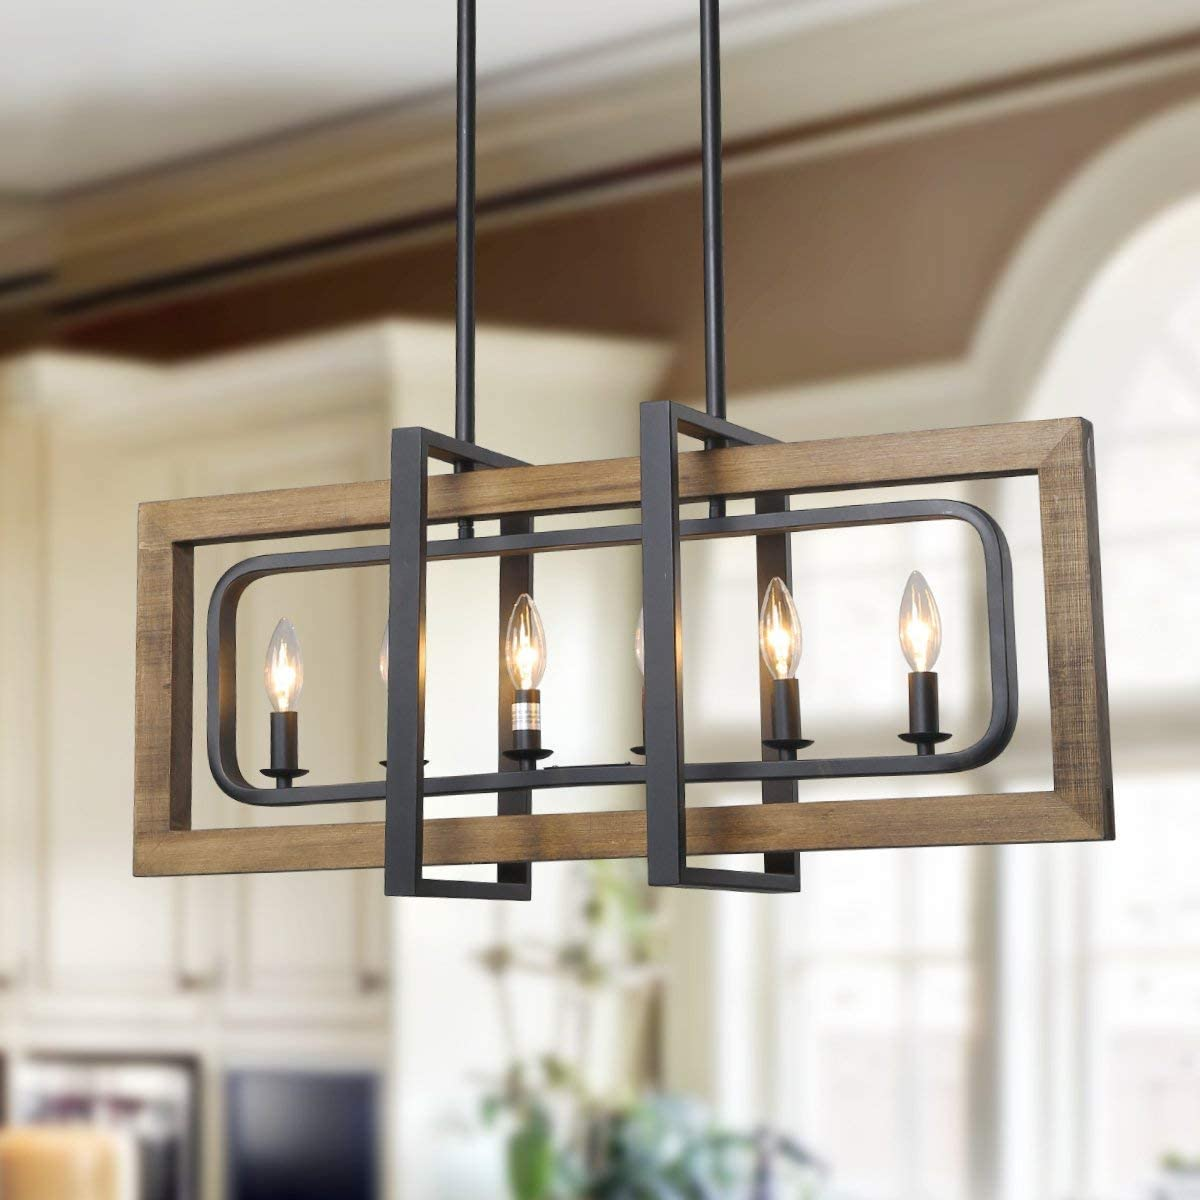 LOG BARN Distressed Wood and Matte Black Metal Finish 31.5 Large Kitchen Light Fixture, 6 Dinning Table Decor and Accessories, for Living Room